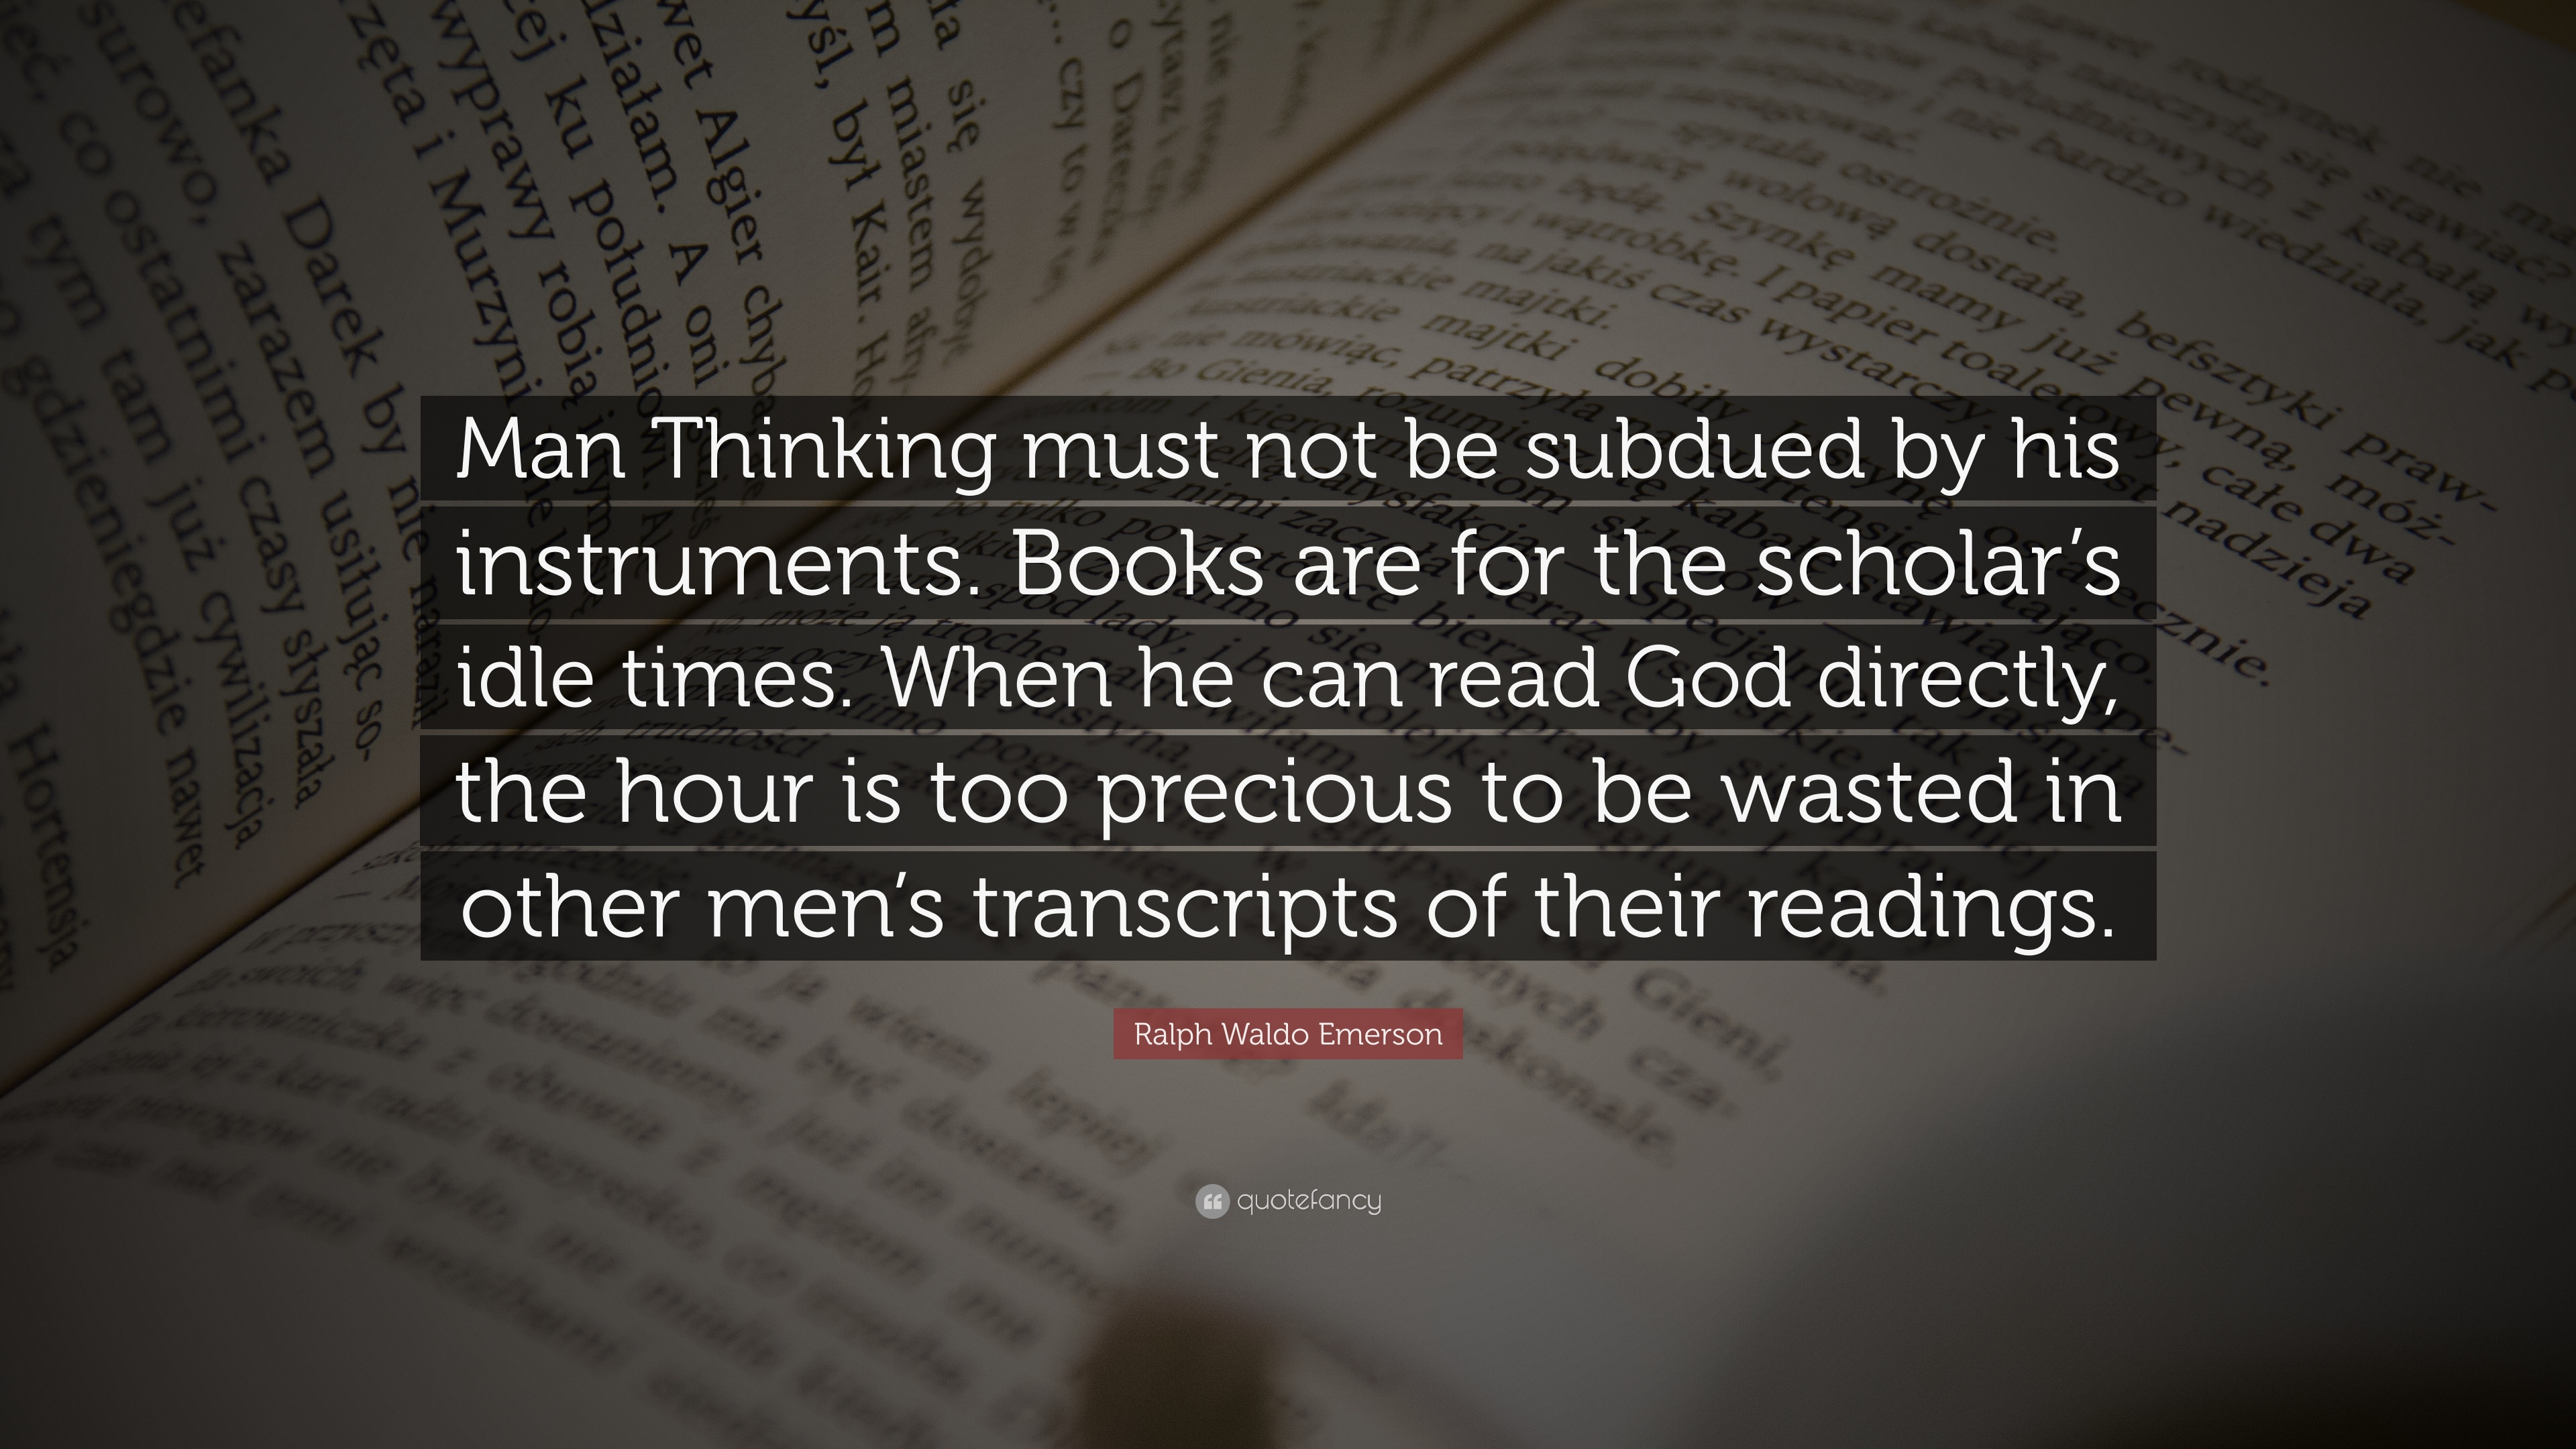 what does emerson mean by man thinking